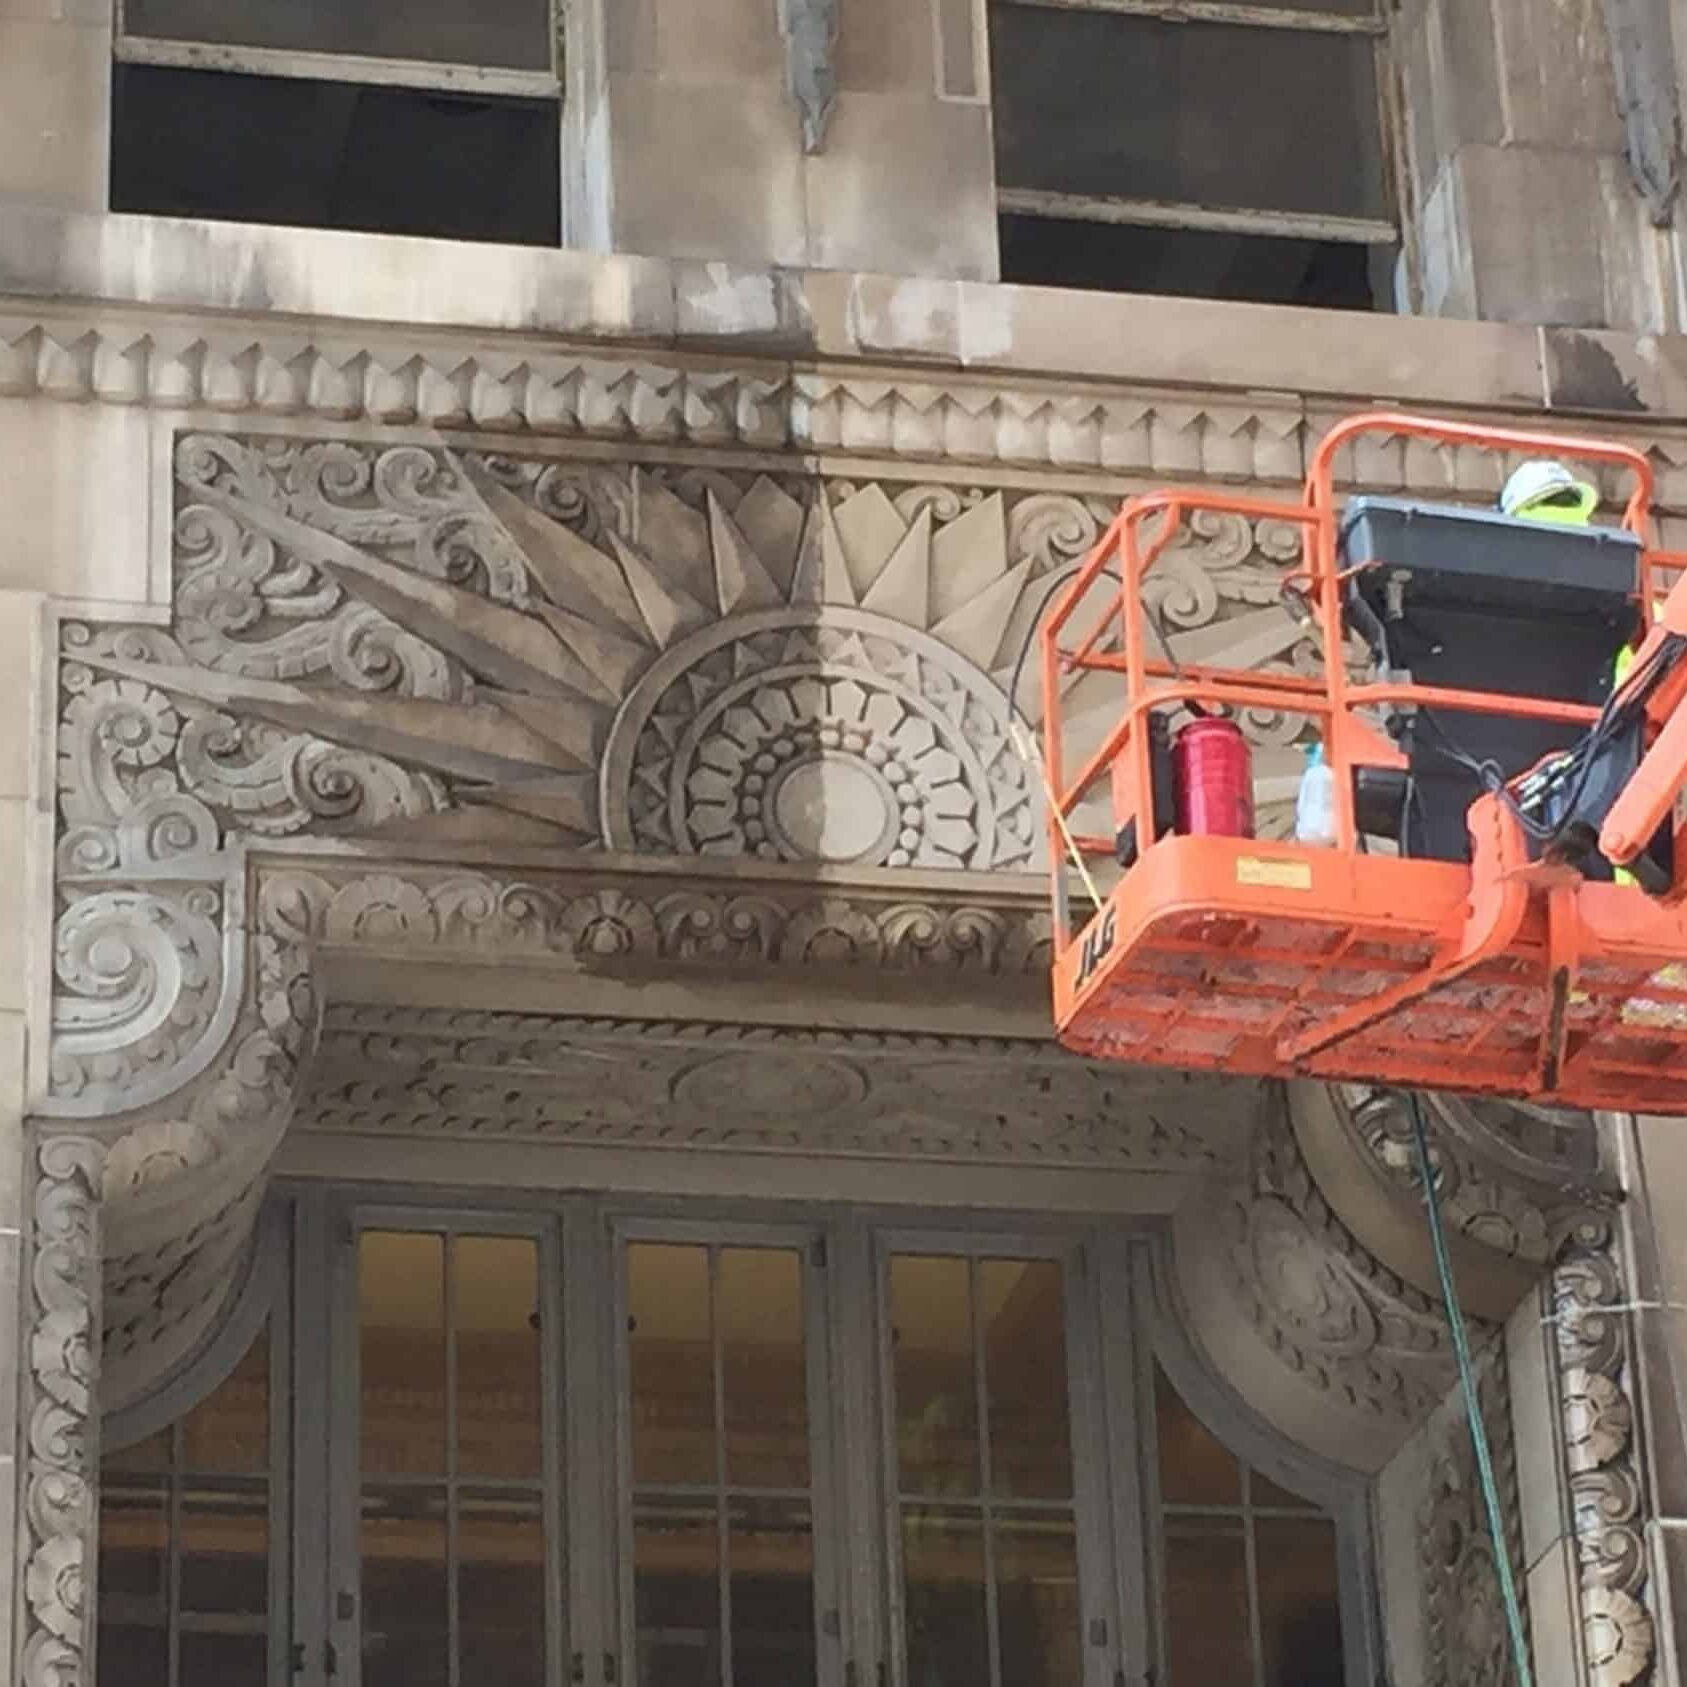 Crews used ReVive to remove biological staining from Kansas City Power & Light building.